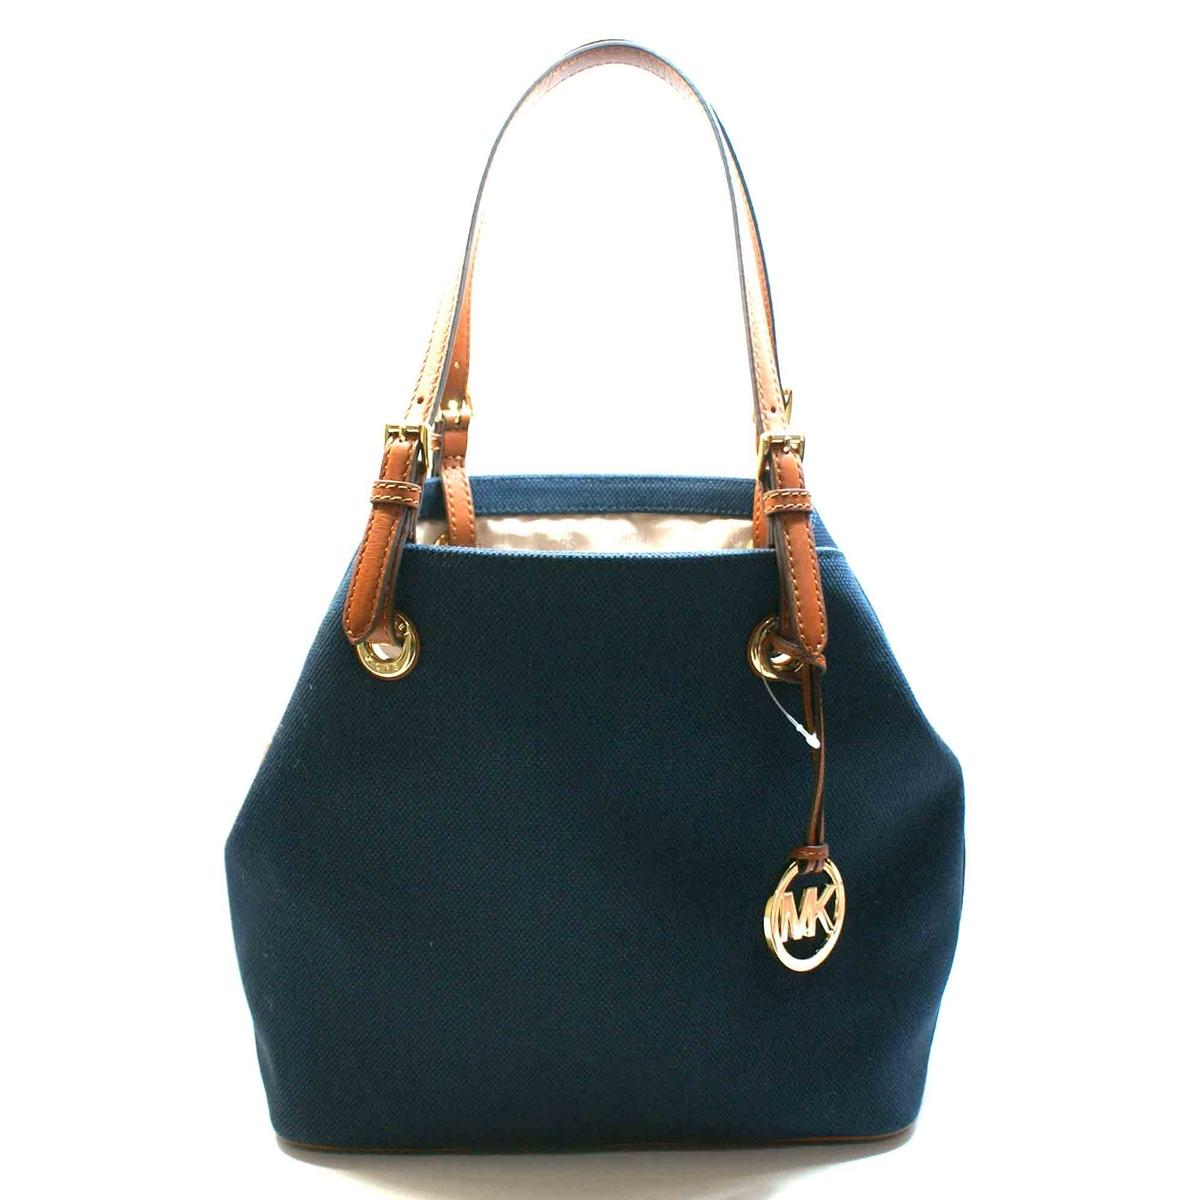 1921d8609a8a Home · Michael Kors · Jet Set Canvas Grab Tote Bag Navy Blue. CLICK  THUMBNAIL TO ZOOM. Found ...